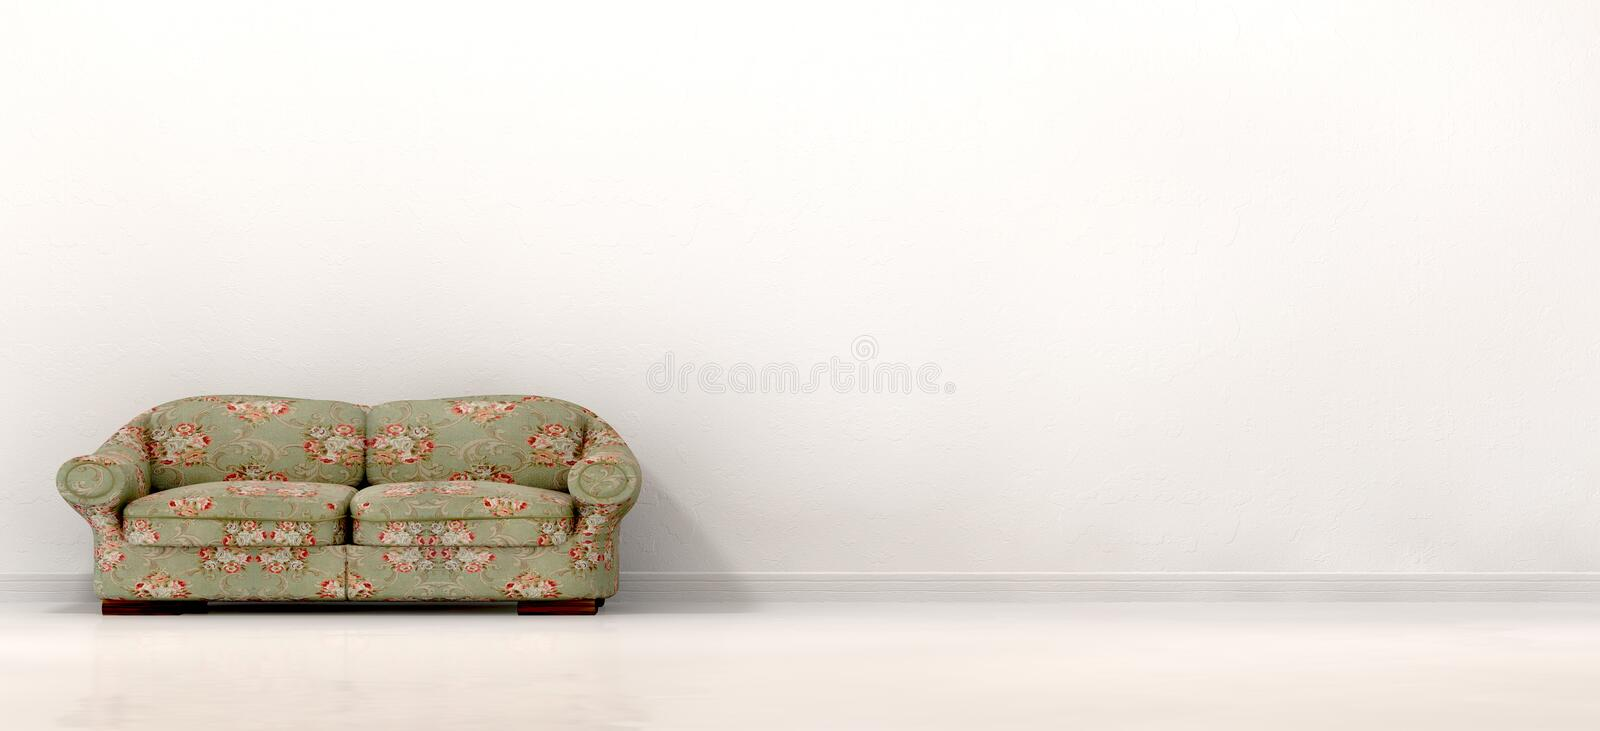 Old Sofa In Empty White Room Stock Image Image of skirting